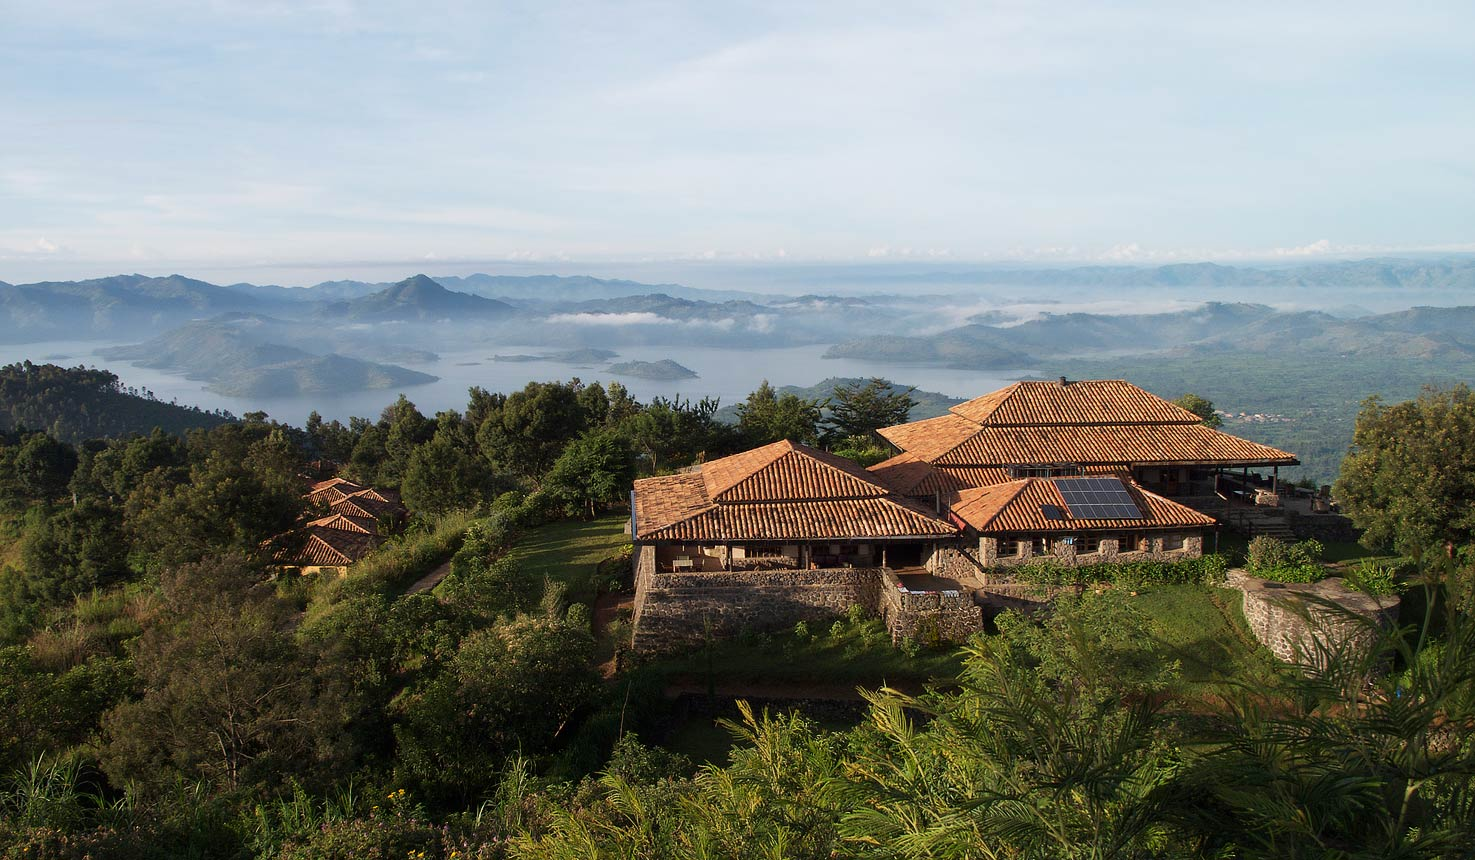 60RVIR-IM1060-virunga-lodge-1475.jpg